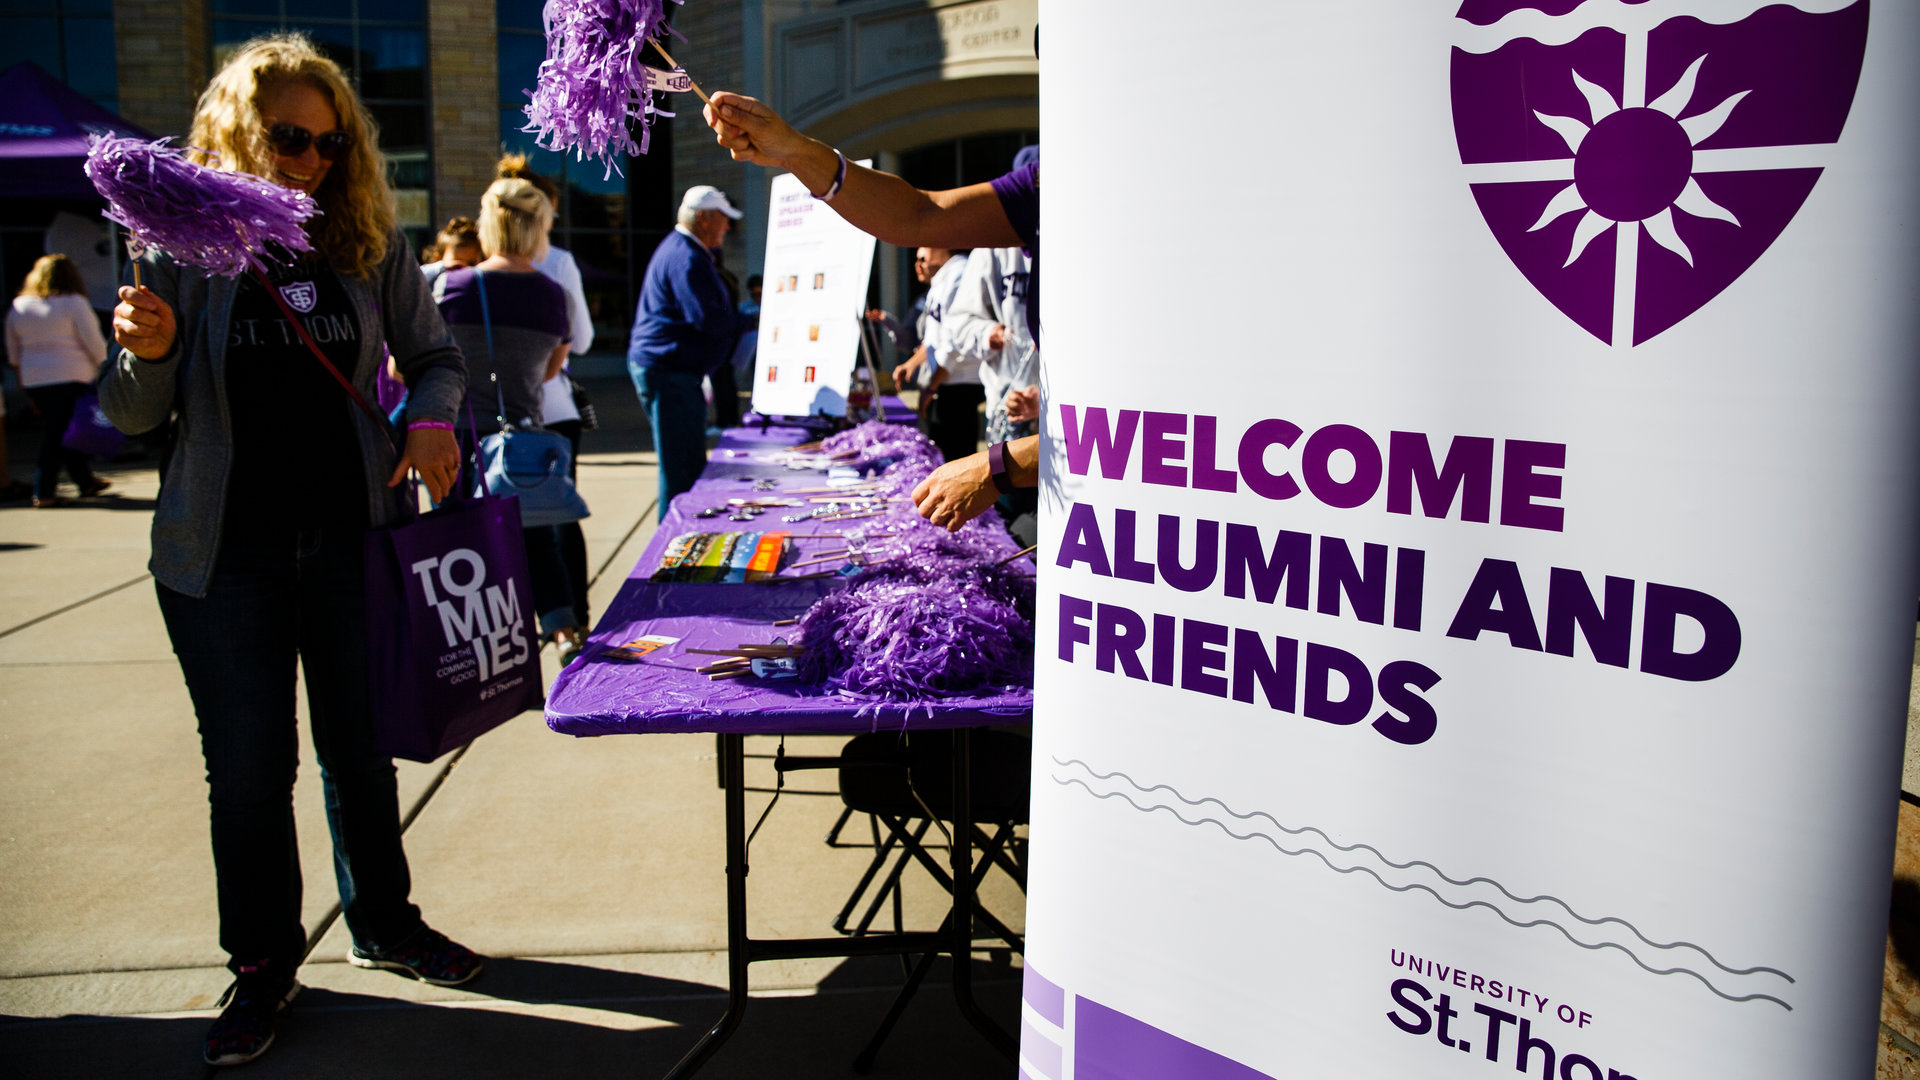 welcome alumni and friends sign on monahan plaza at homecoming